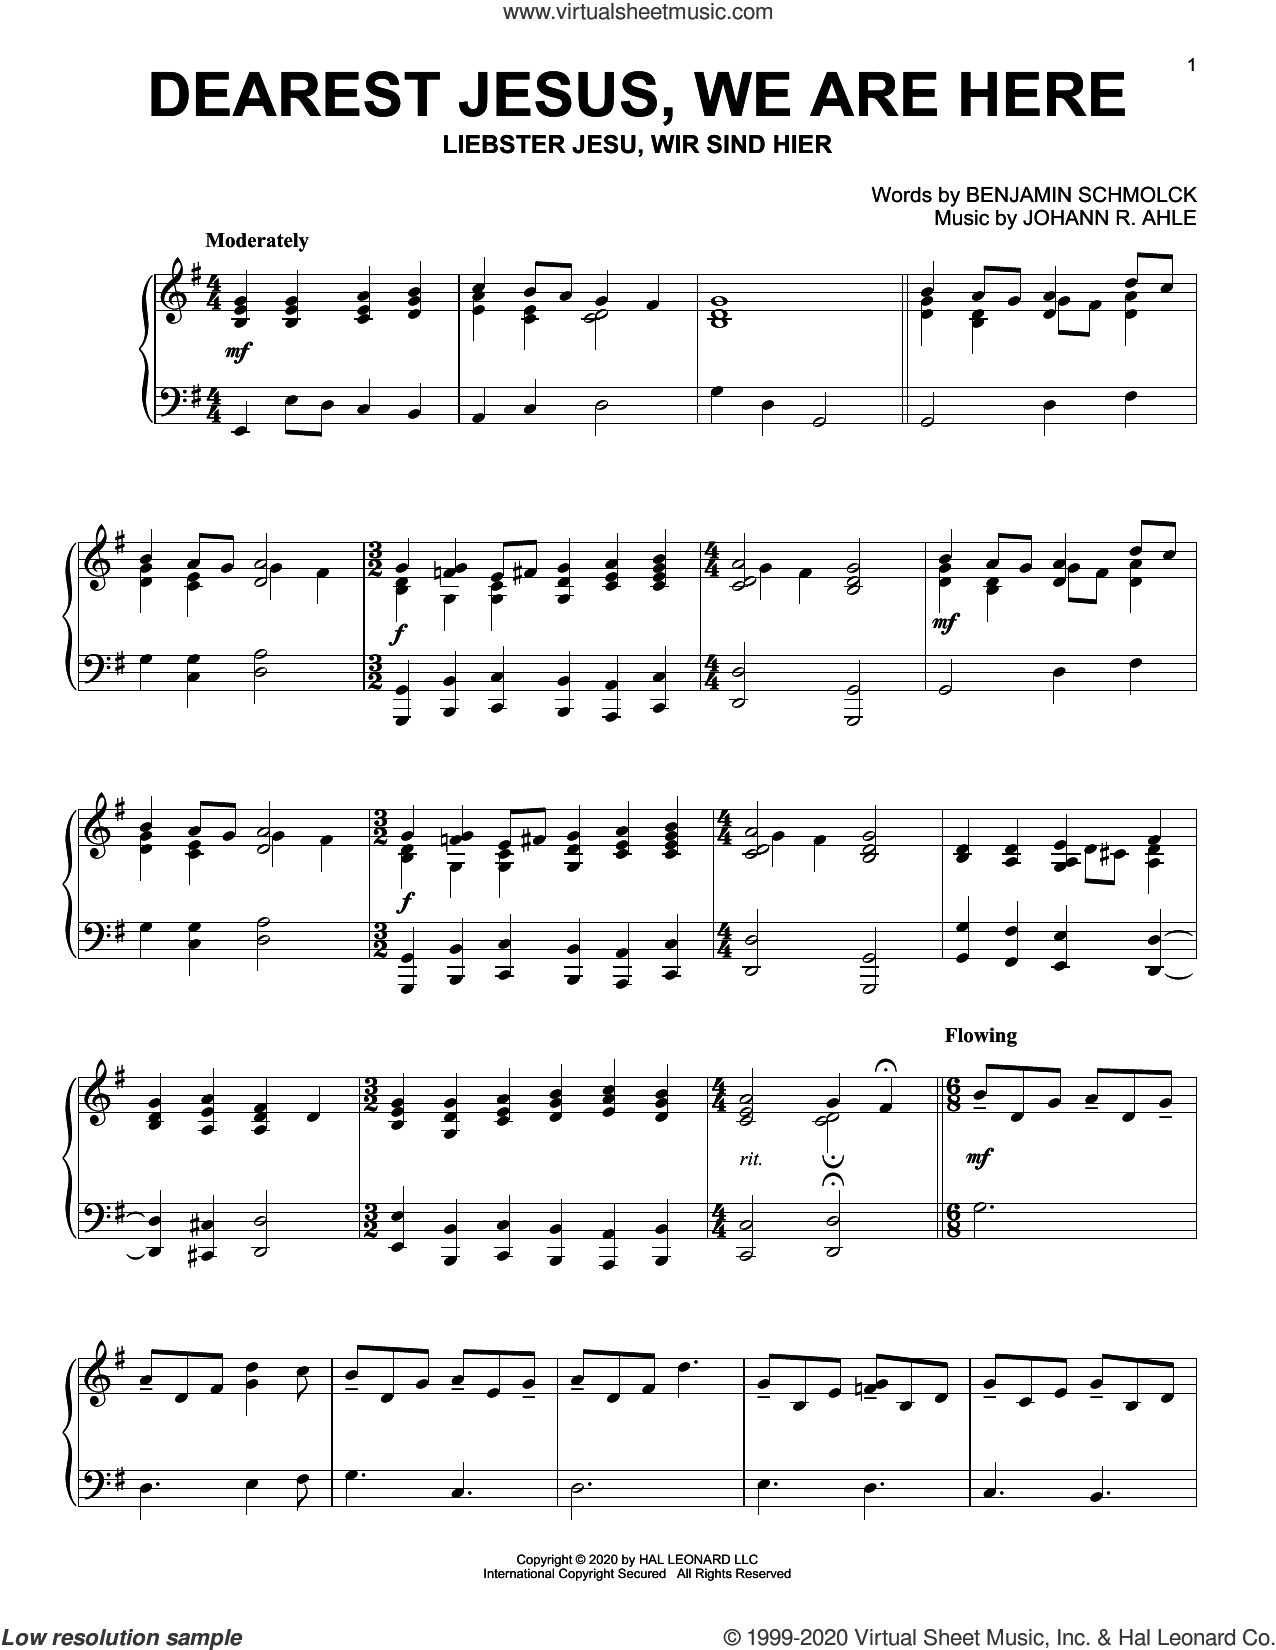 Dearest Jesus, We Are Here sheet music for piano solo by Benjamin Schmolck and Johann R. Ahle, Benjamin Schmolck and Johann R. Ahle, intermediate skill level